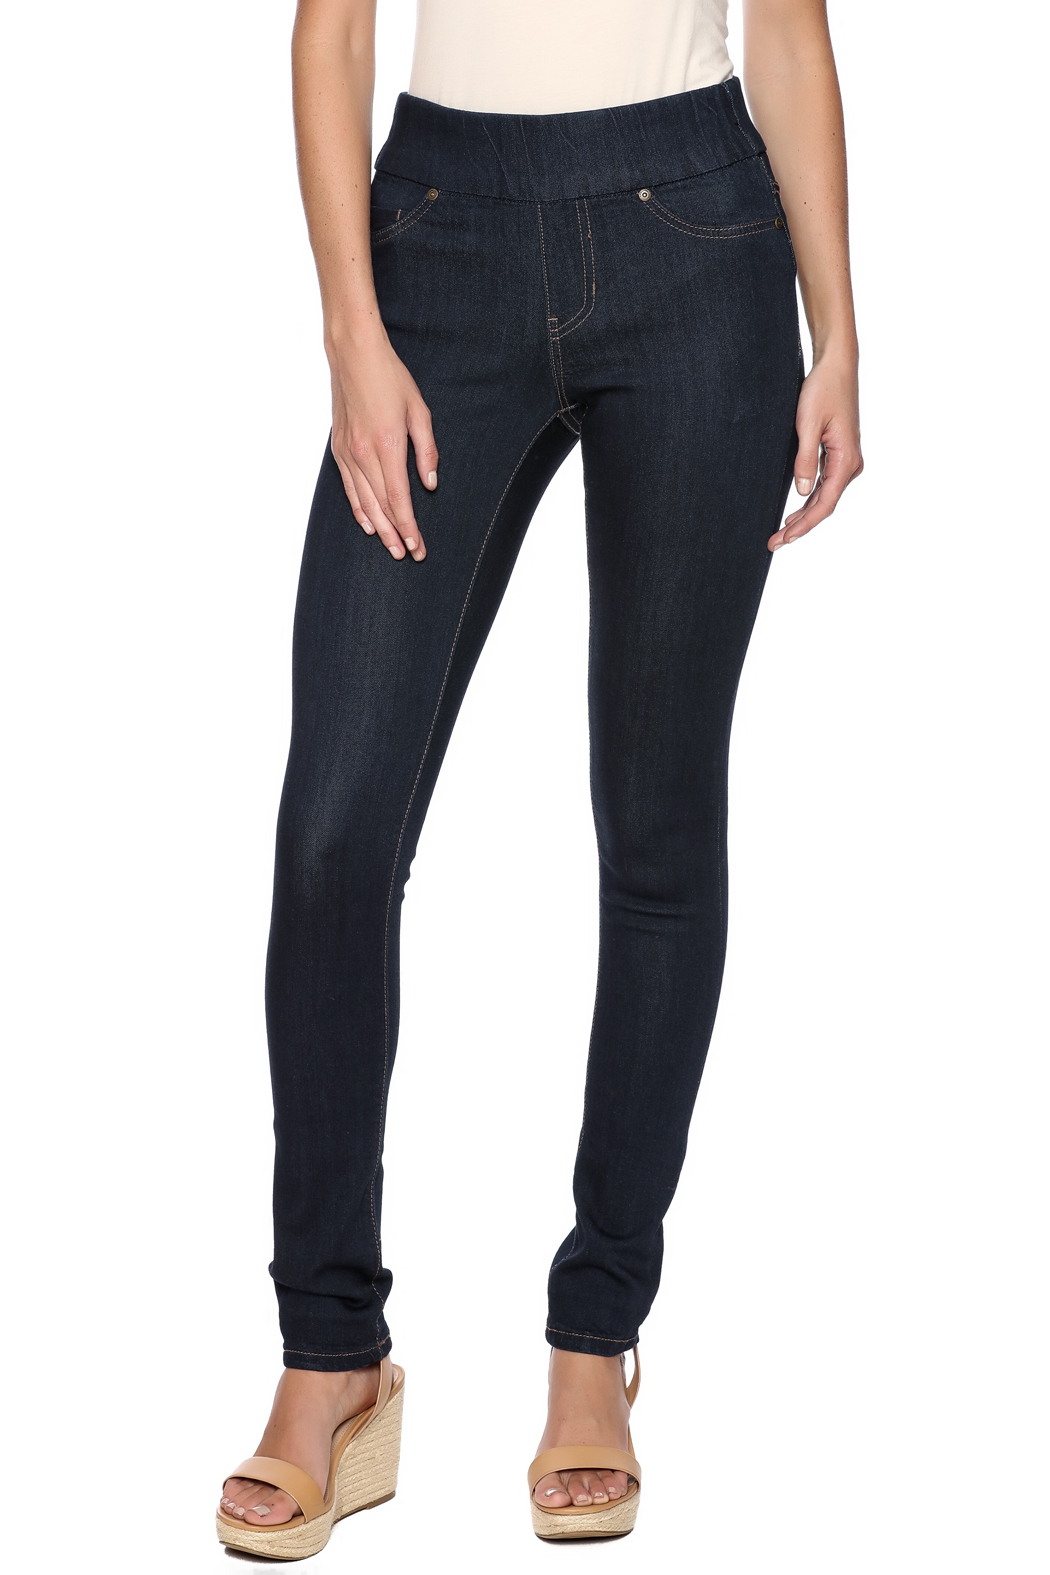 Liverpool Jeans Company Dark Indigo Sienna Jeggings - Front Cropped Image